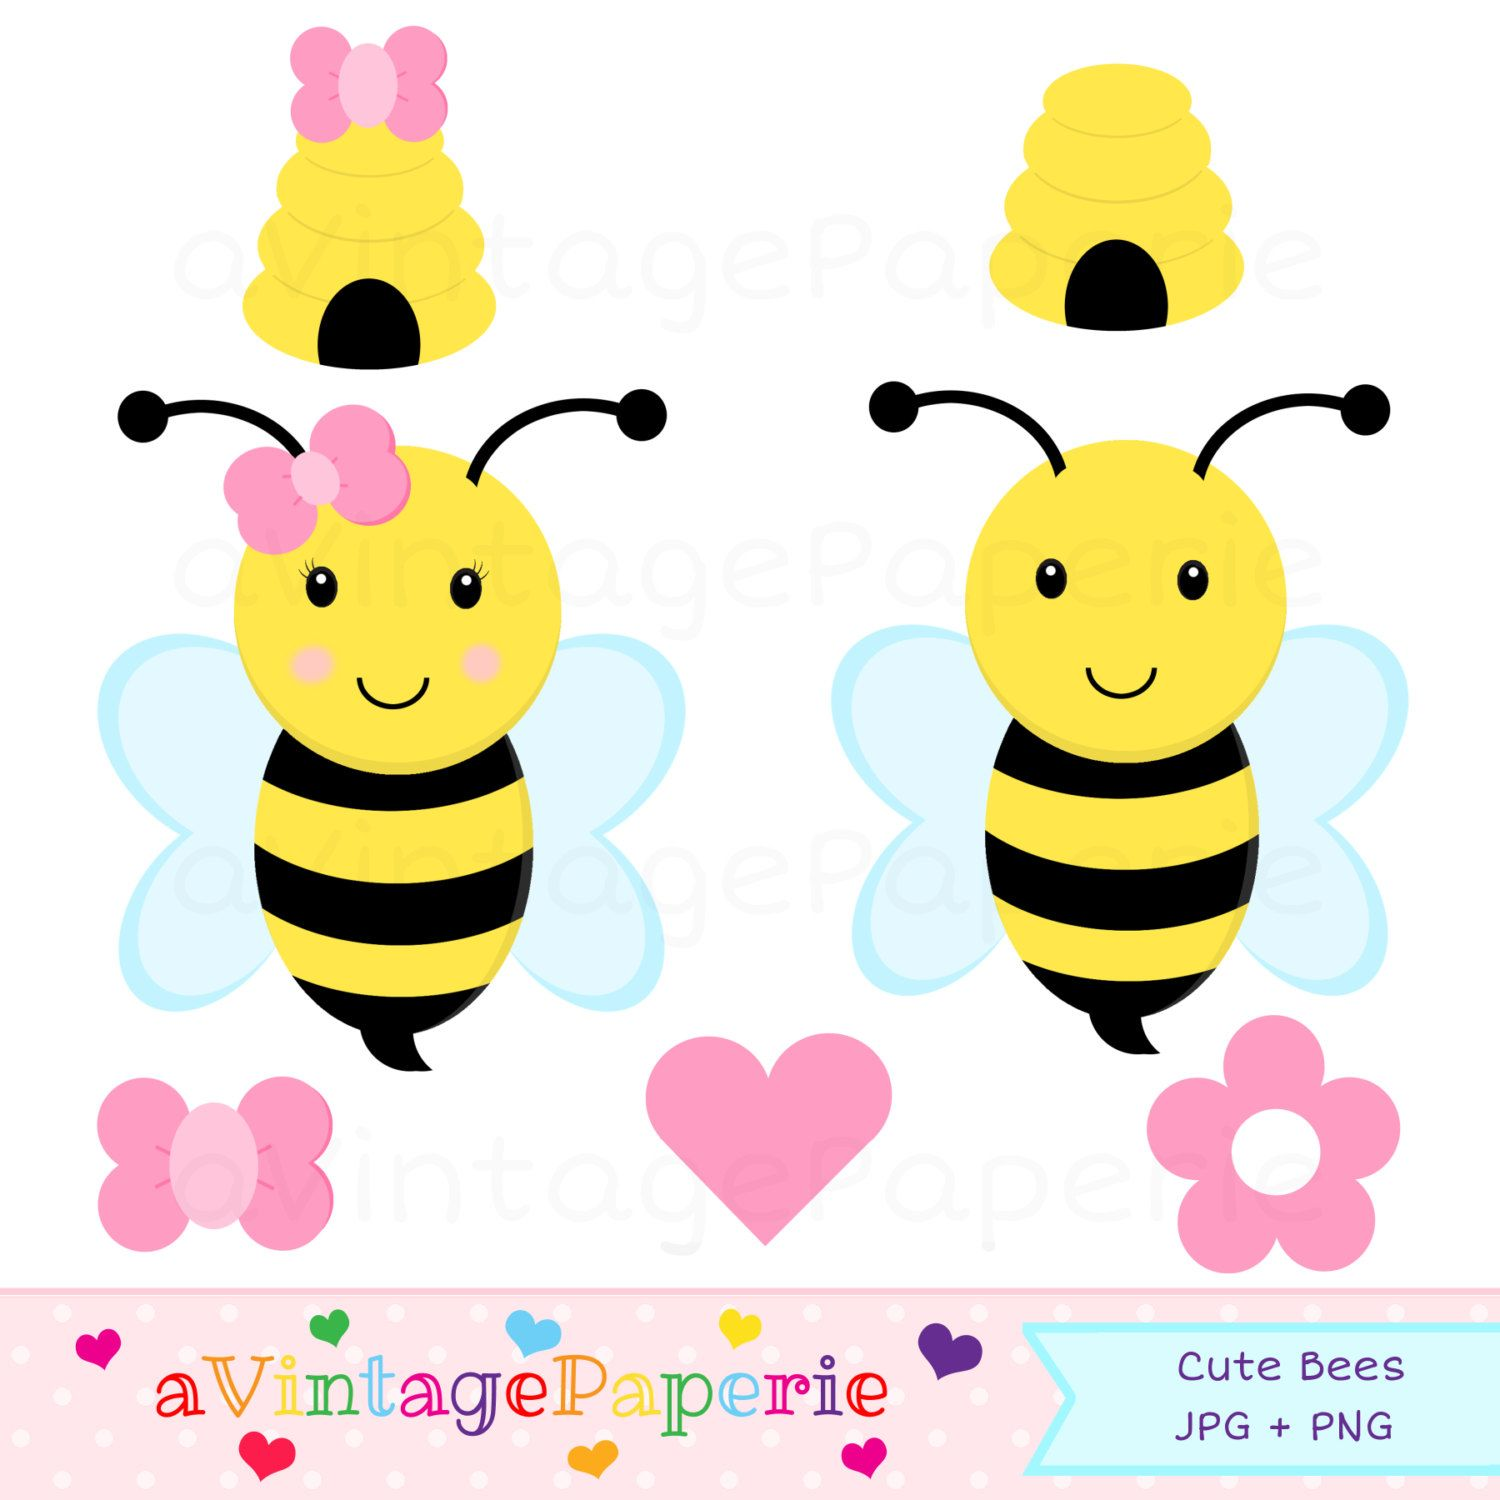 bumble bee clipart bumble bee clip art commercial use clipart rh pinterest com royalty free commercial use clipart copyright free for commercial use clipart